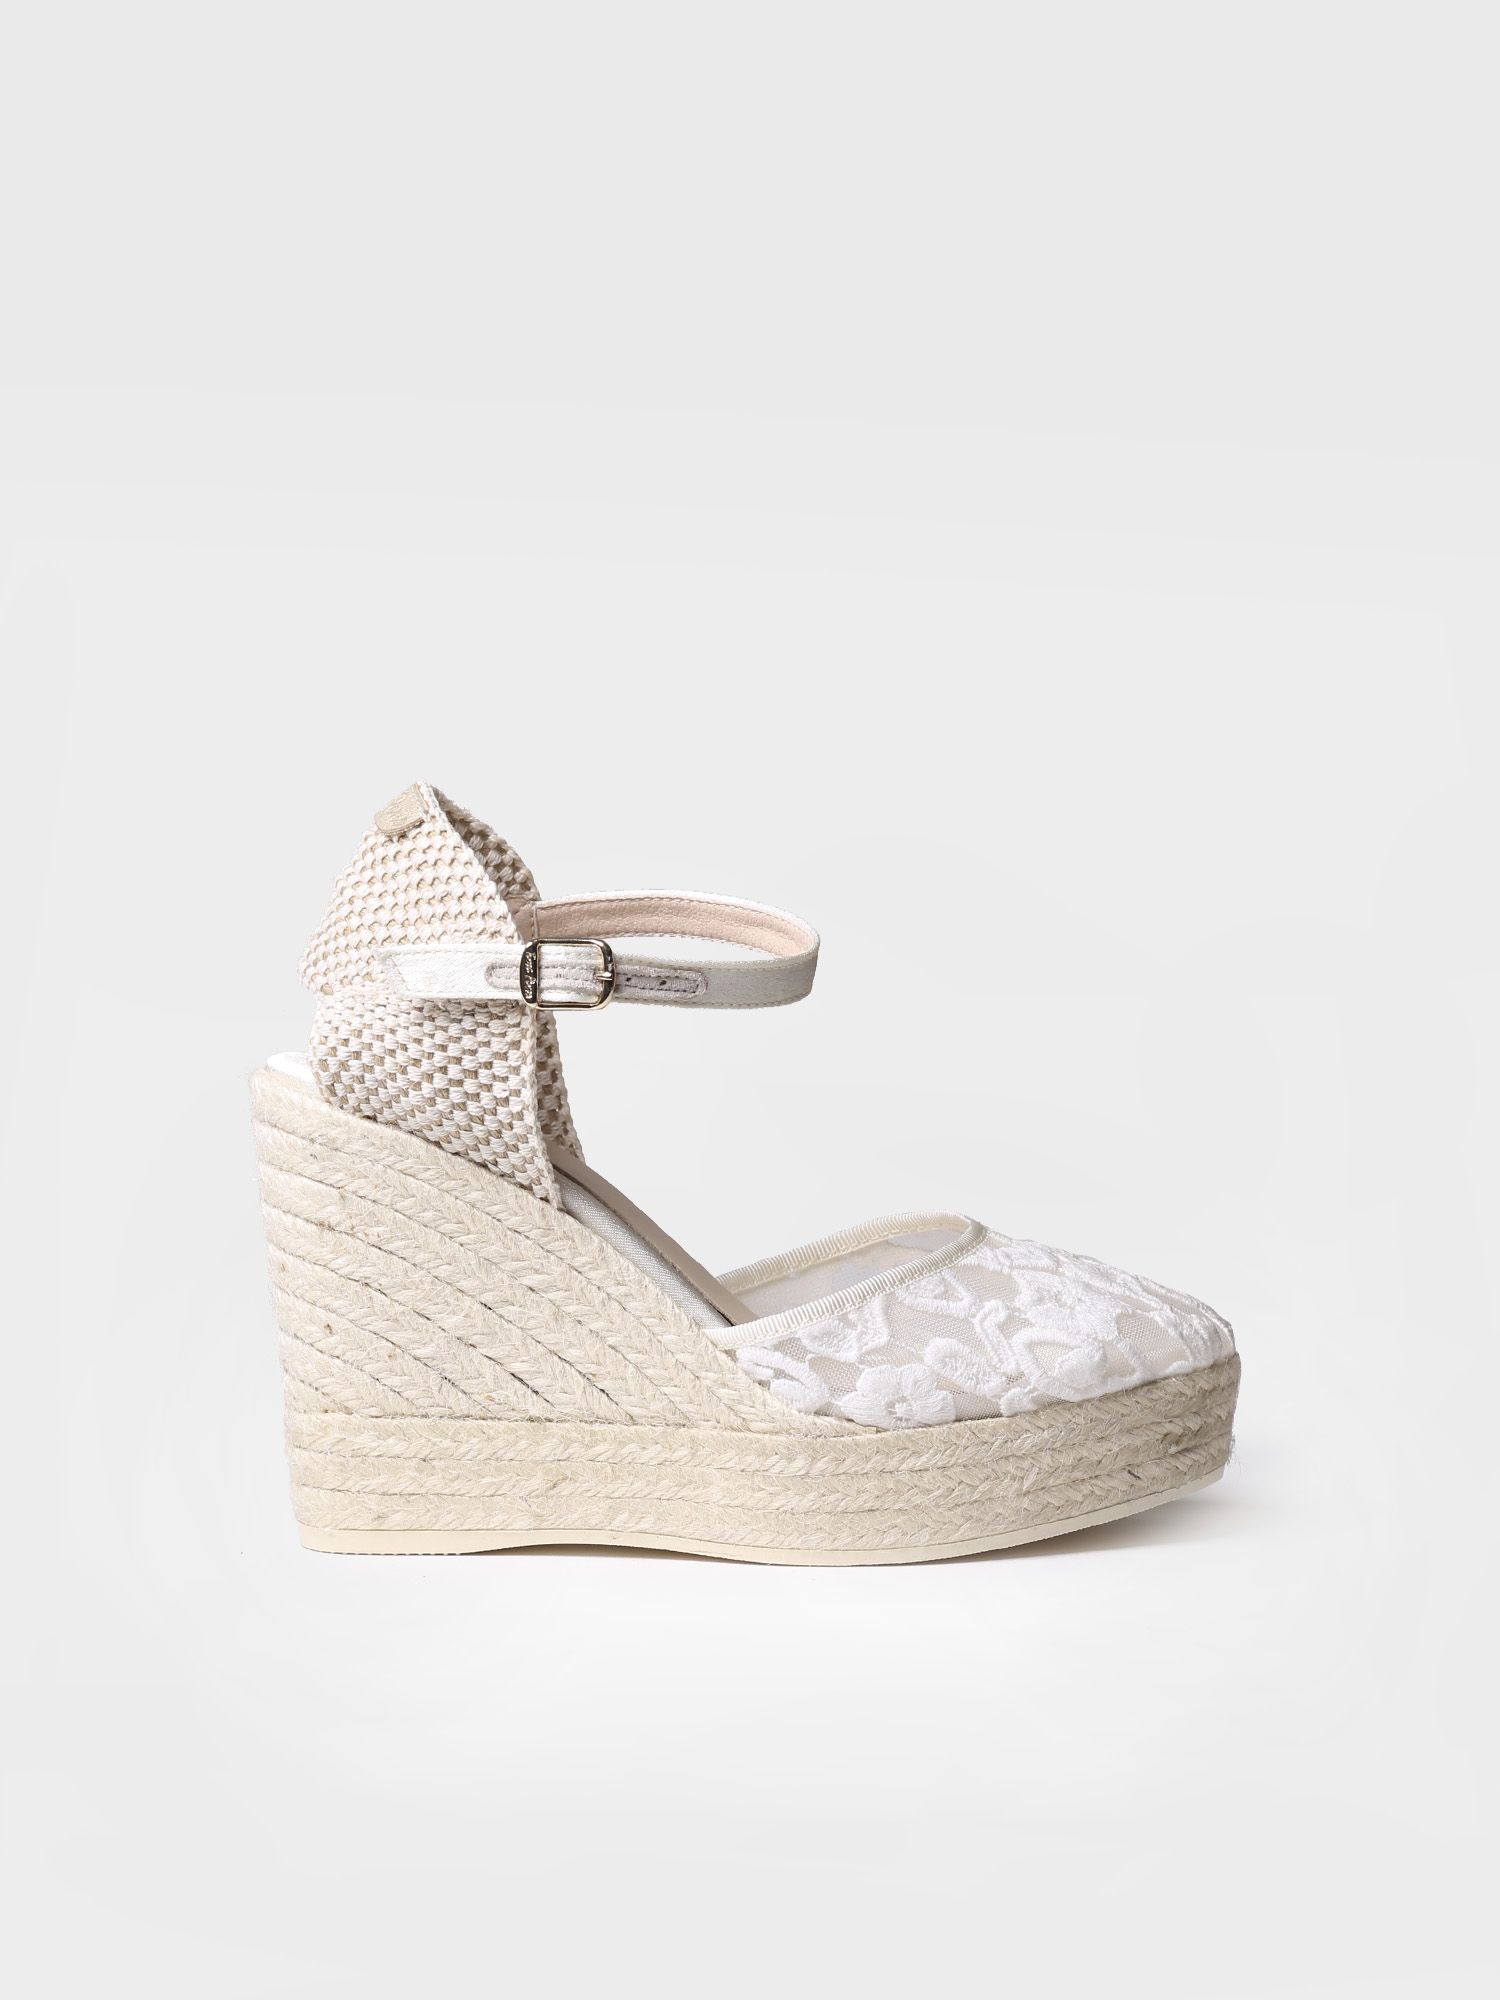 Wedding wedges - PAOLA